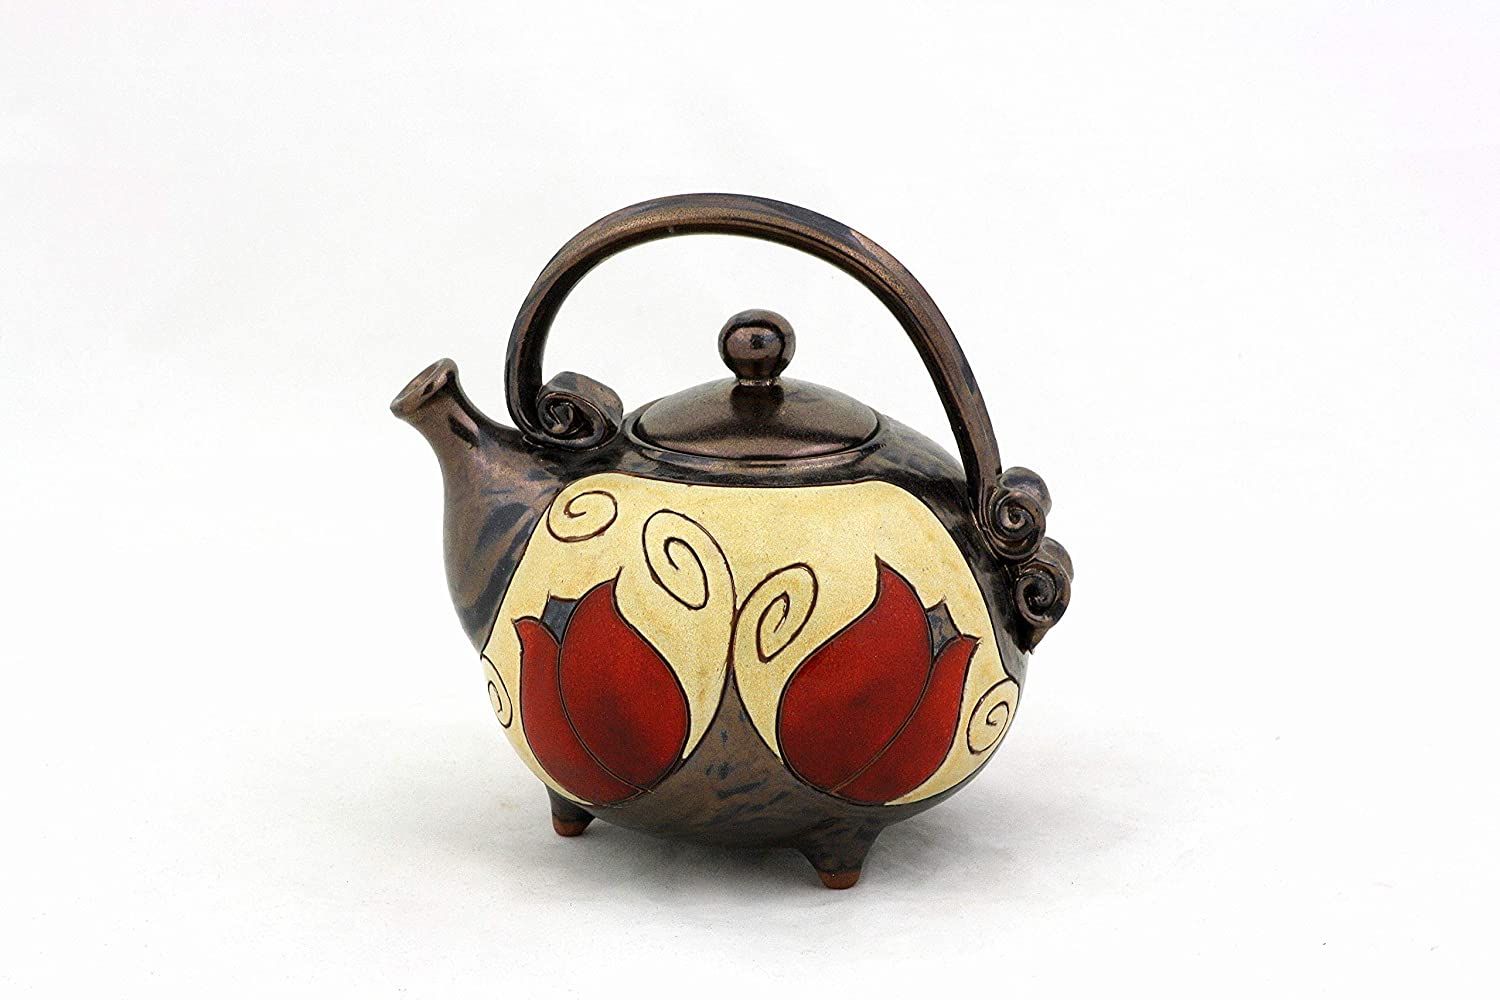 Ceramic Limited time trial price handmade teapot Potteryteapot Raleigh Mall Co Unique quirky